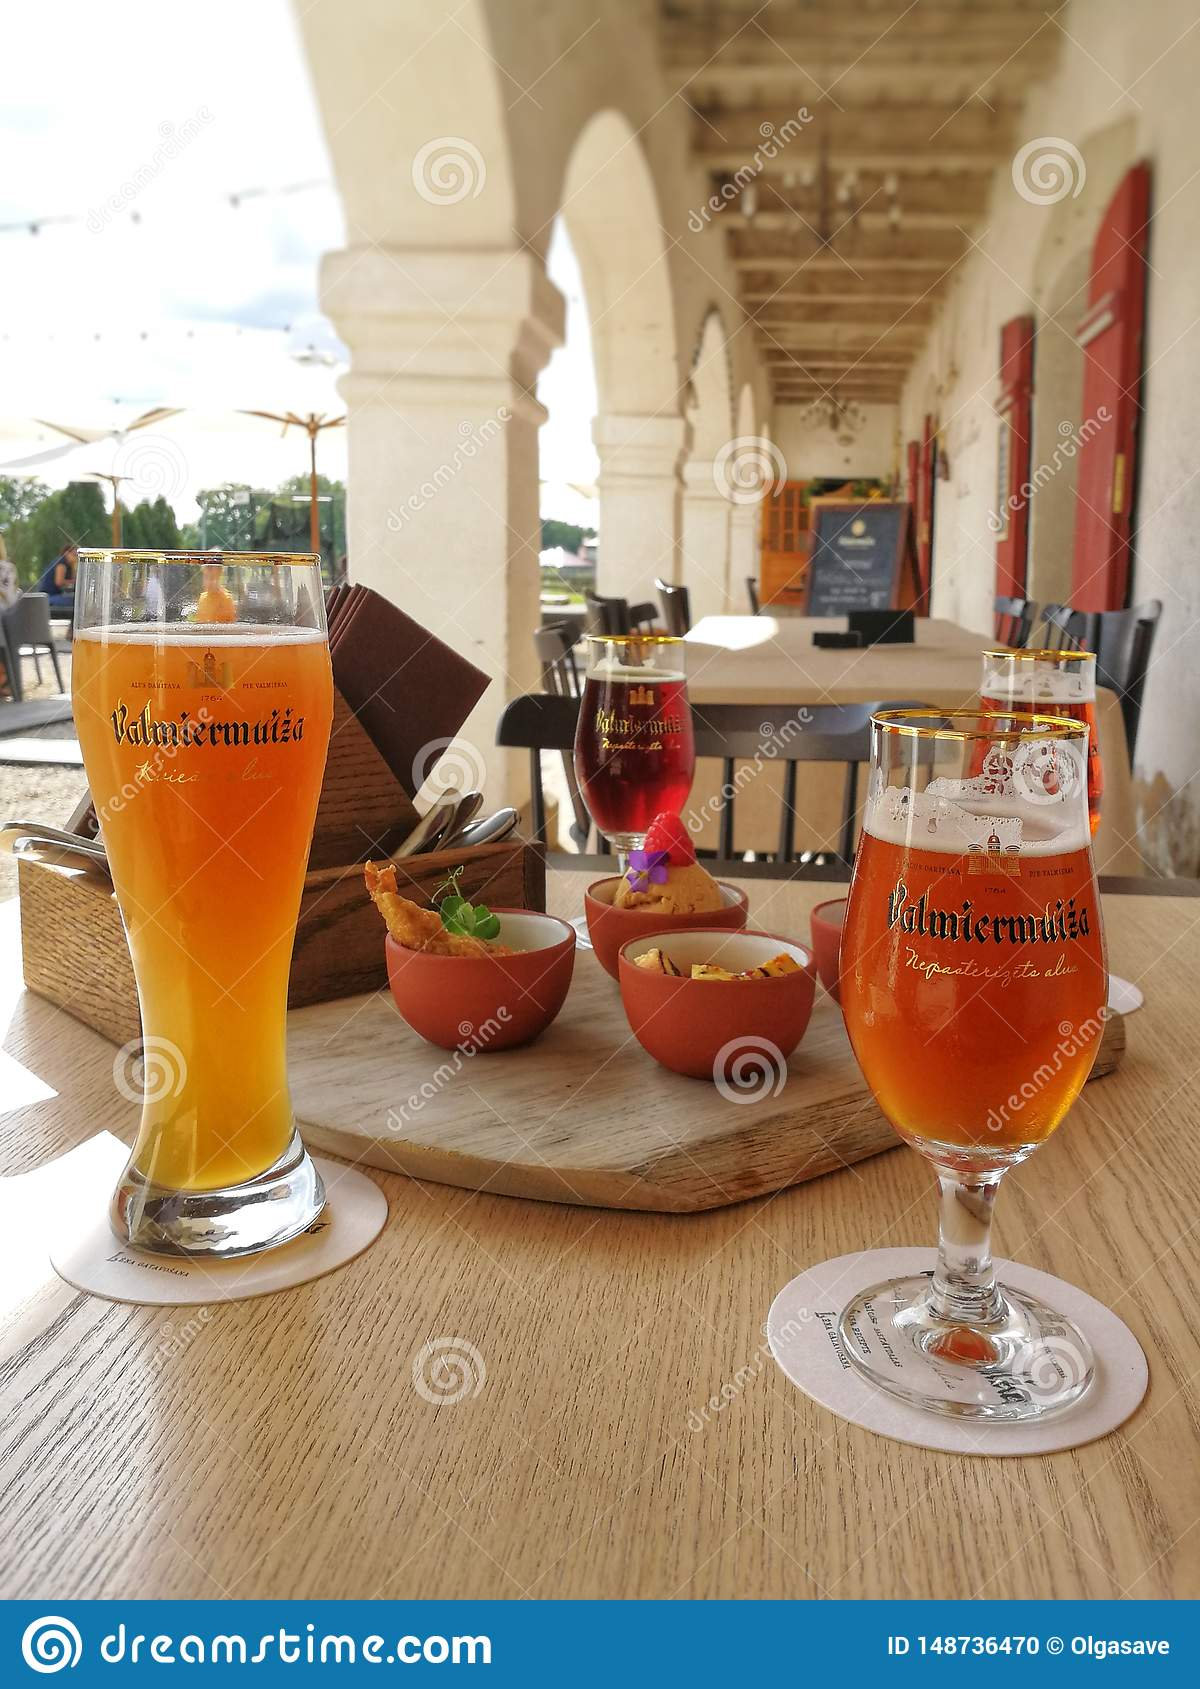 Glasses of beer and snacks on the table in the local restaurant near to the beer manufacture, Valmiera, Latvia